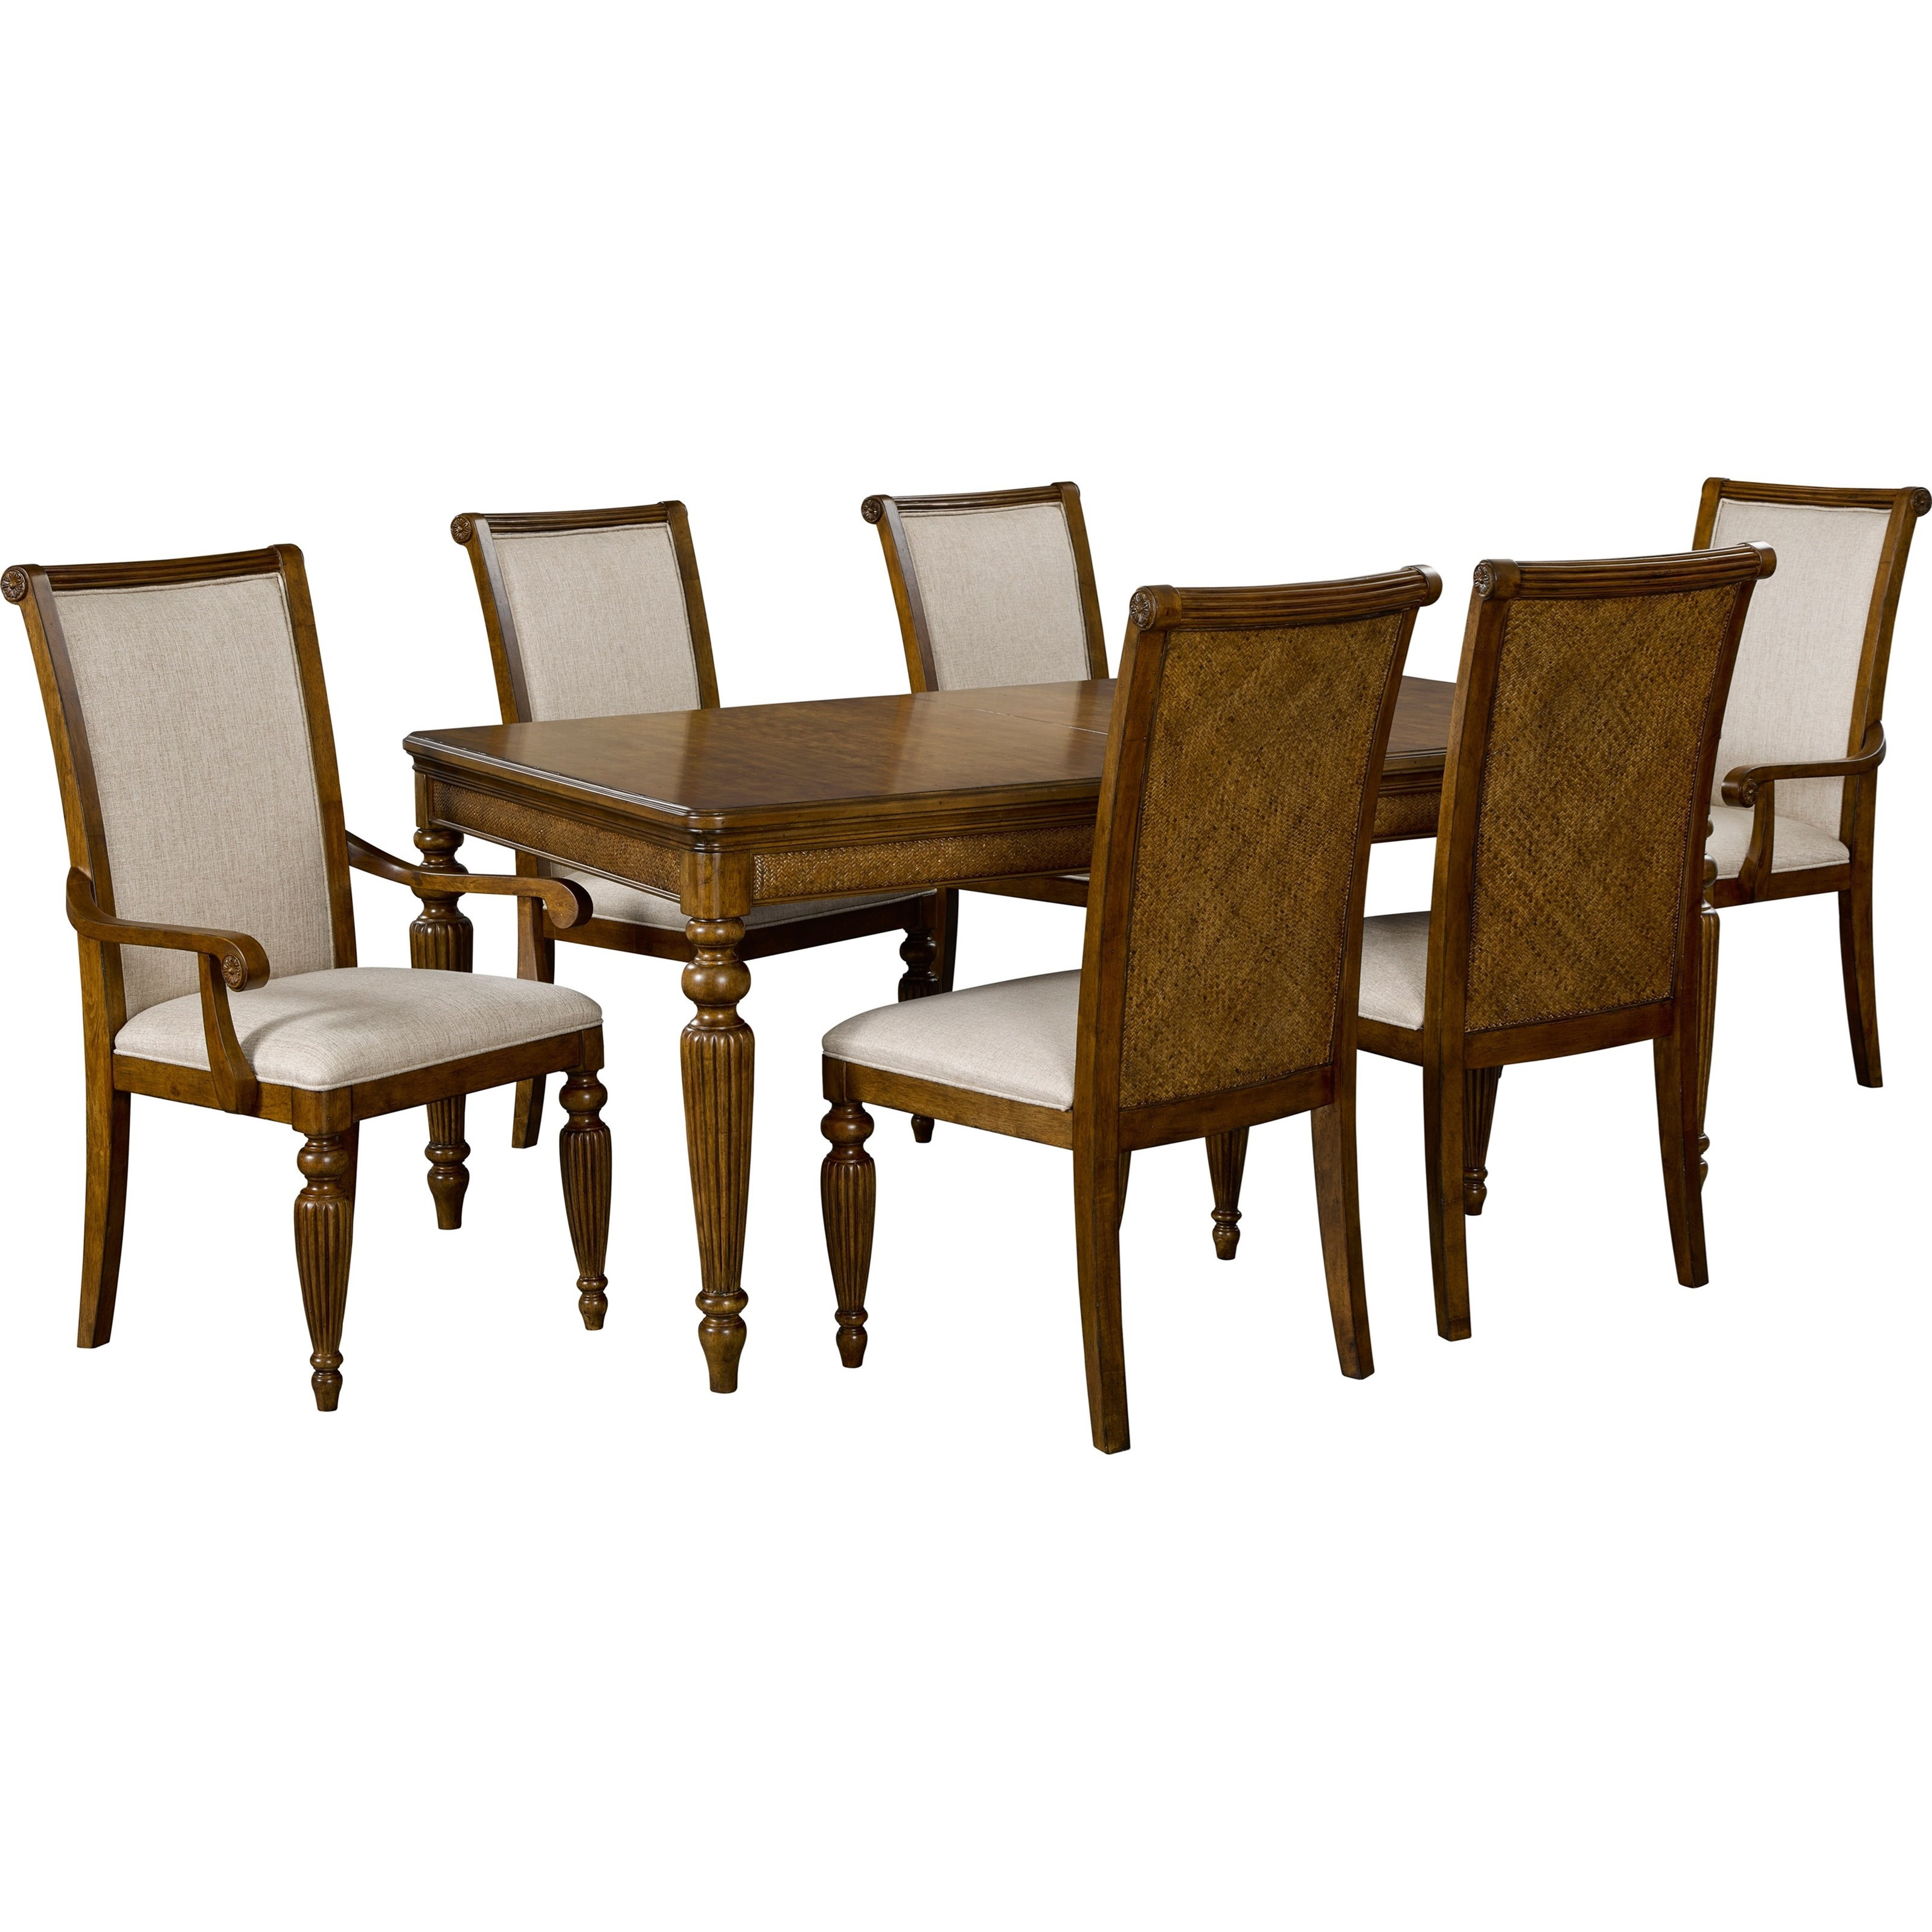 Broyhill furniture amalie bay tropical 7 piece table and for Broyhill dining room